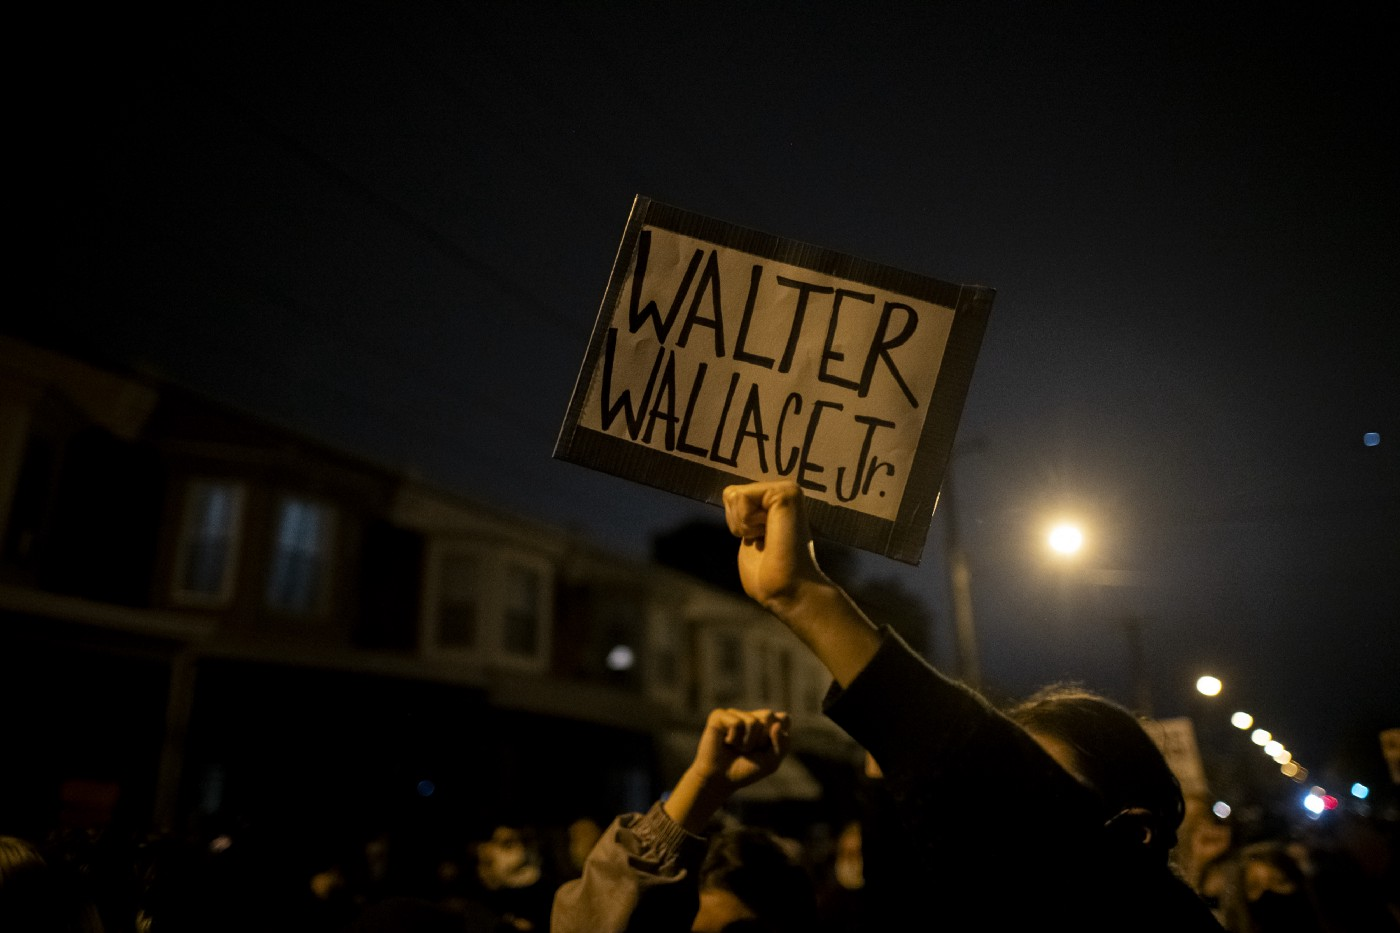 """Protestors holding a placard reading """"WALTER WALLACE JR."""" near the location where Walter Wallace Jr. was killed."""